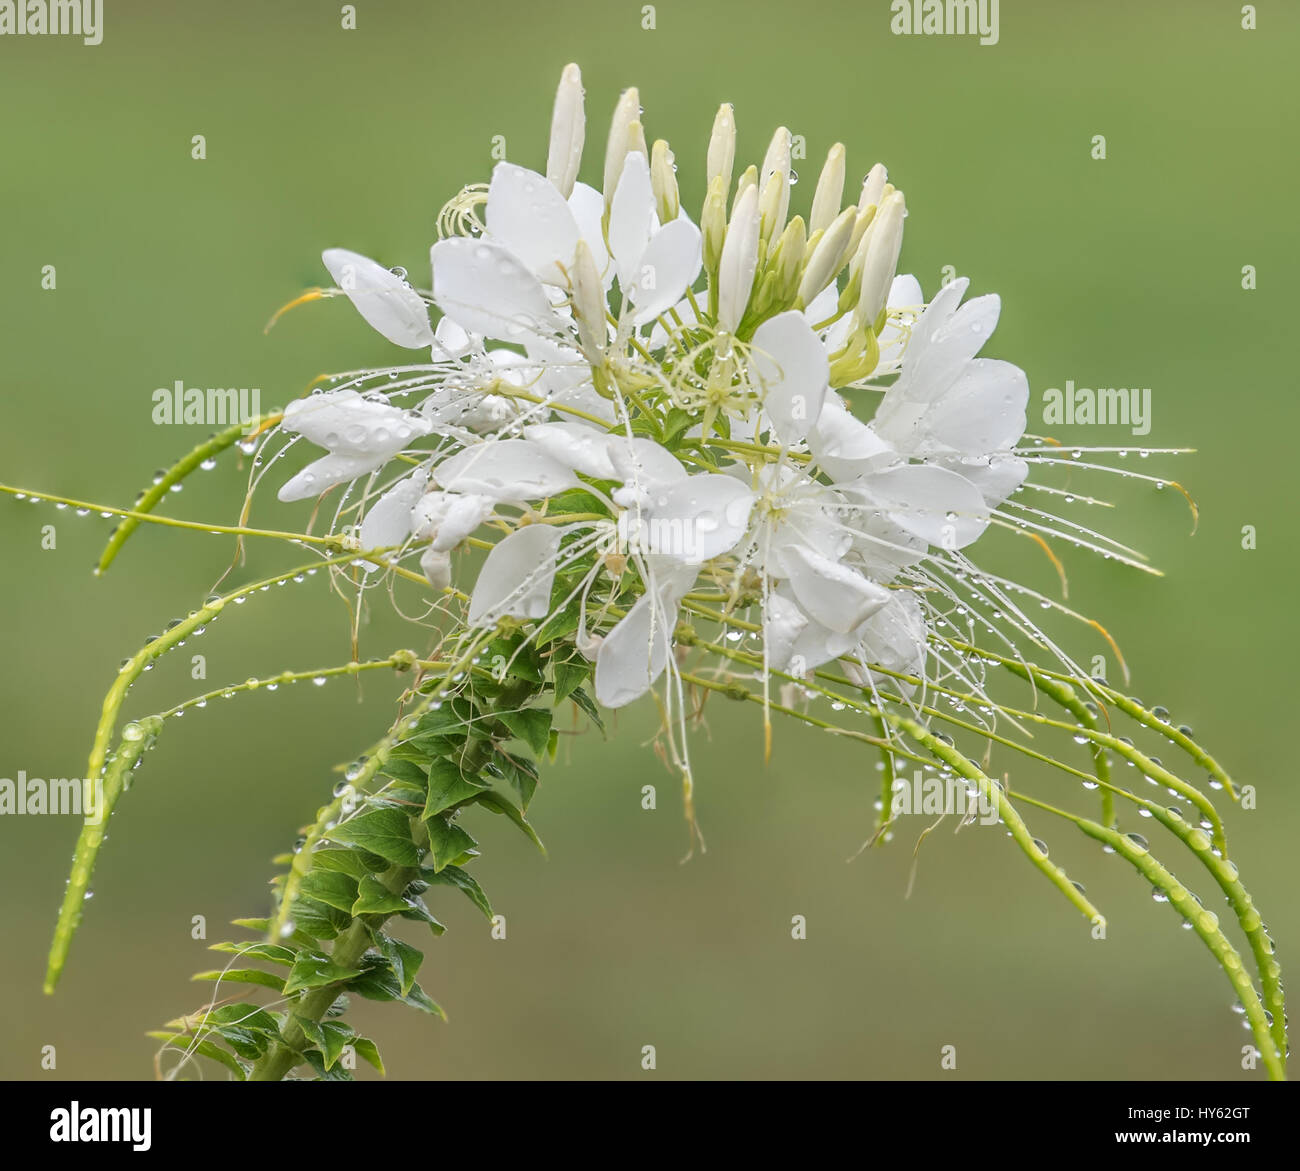 White spider flower blooming in the garden stock photo 137202040 white spider flower blooming in the garden mightylinksfo